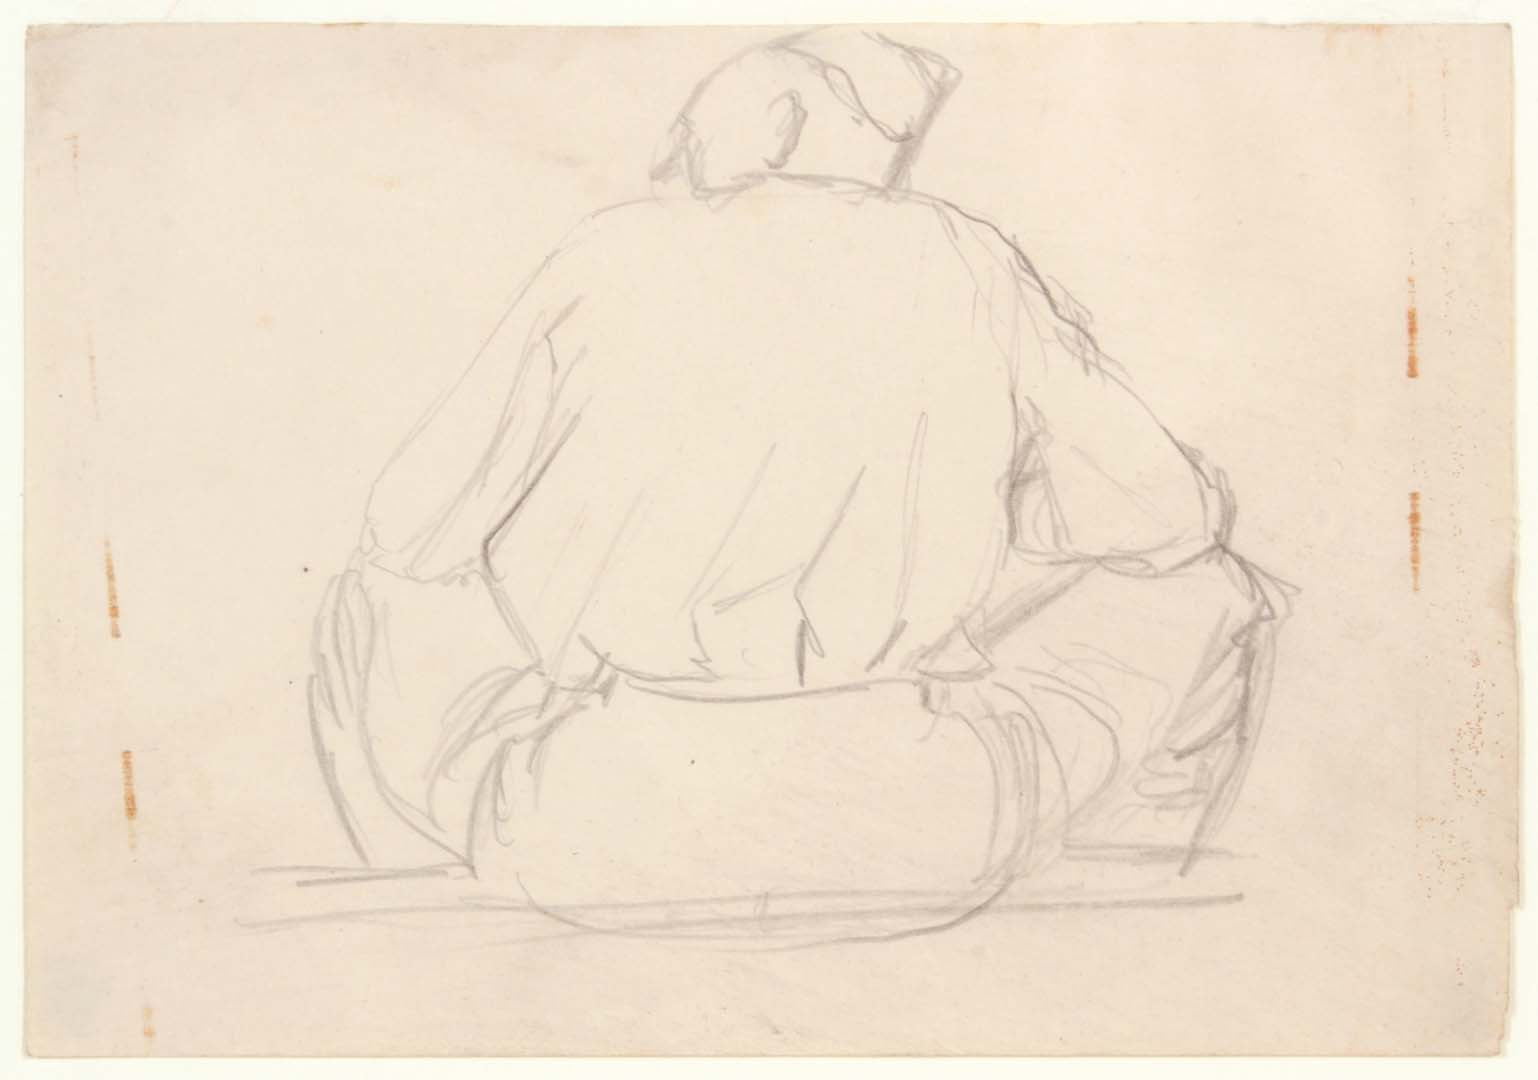 1940 - NT Soldiers Back Sitting - Graphite on Paper - 4.75 x 6.75